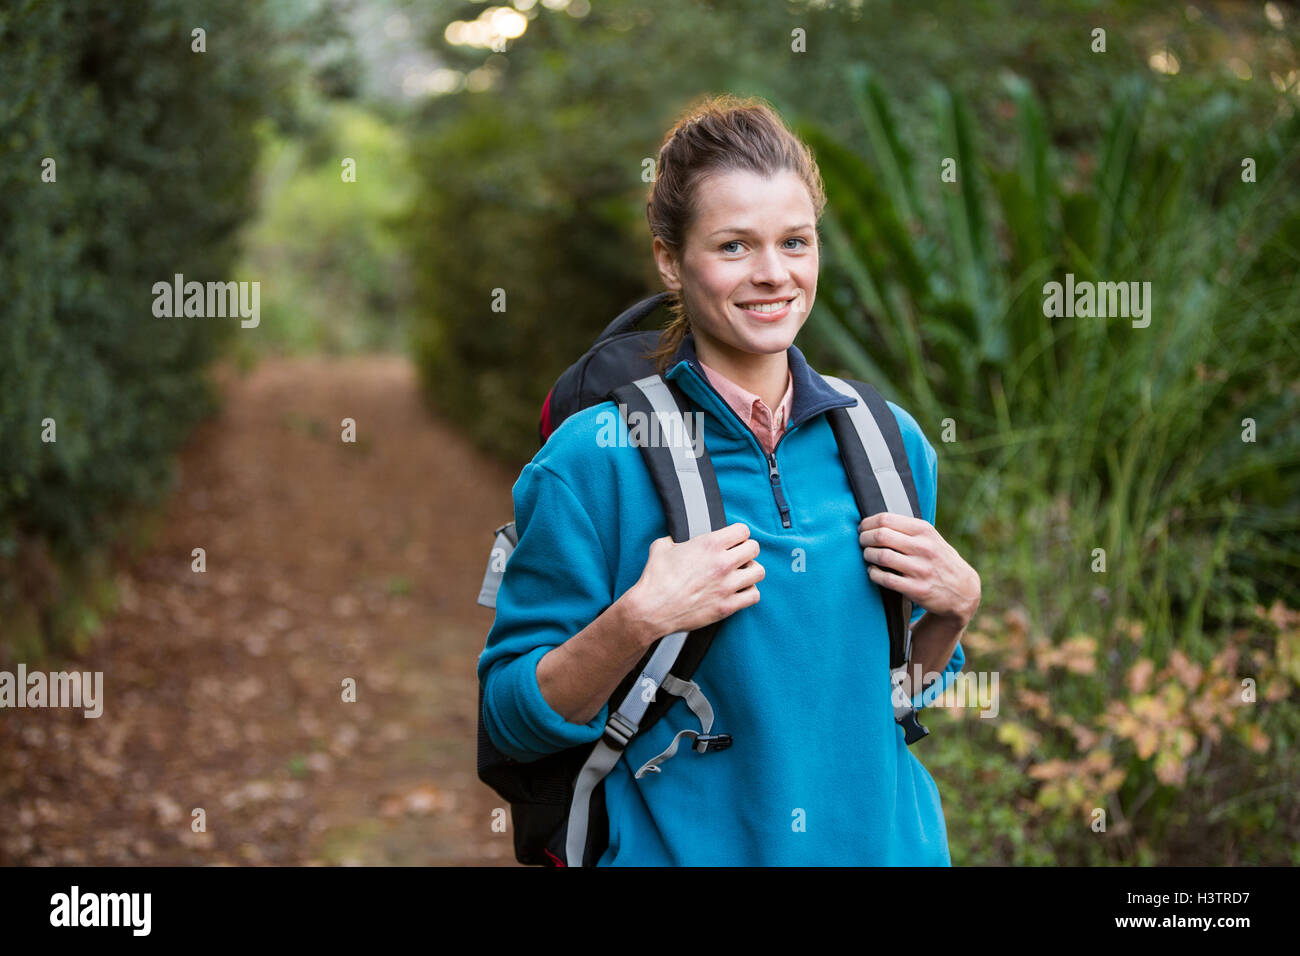 Female hiker standing in forest with backpack - Stock Image